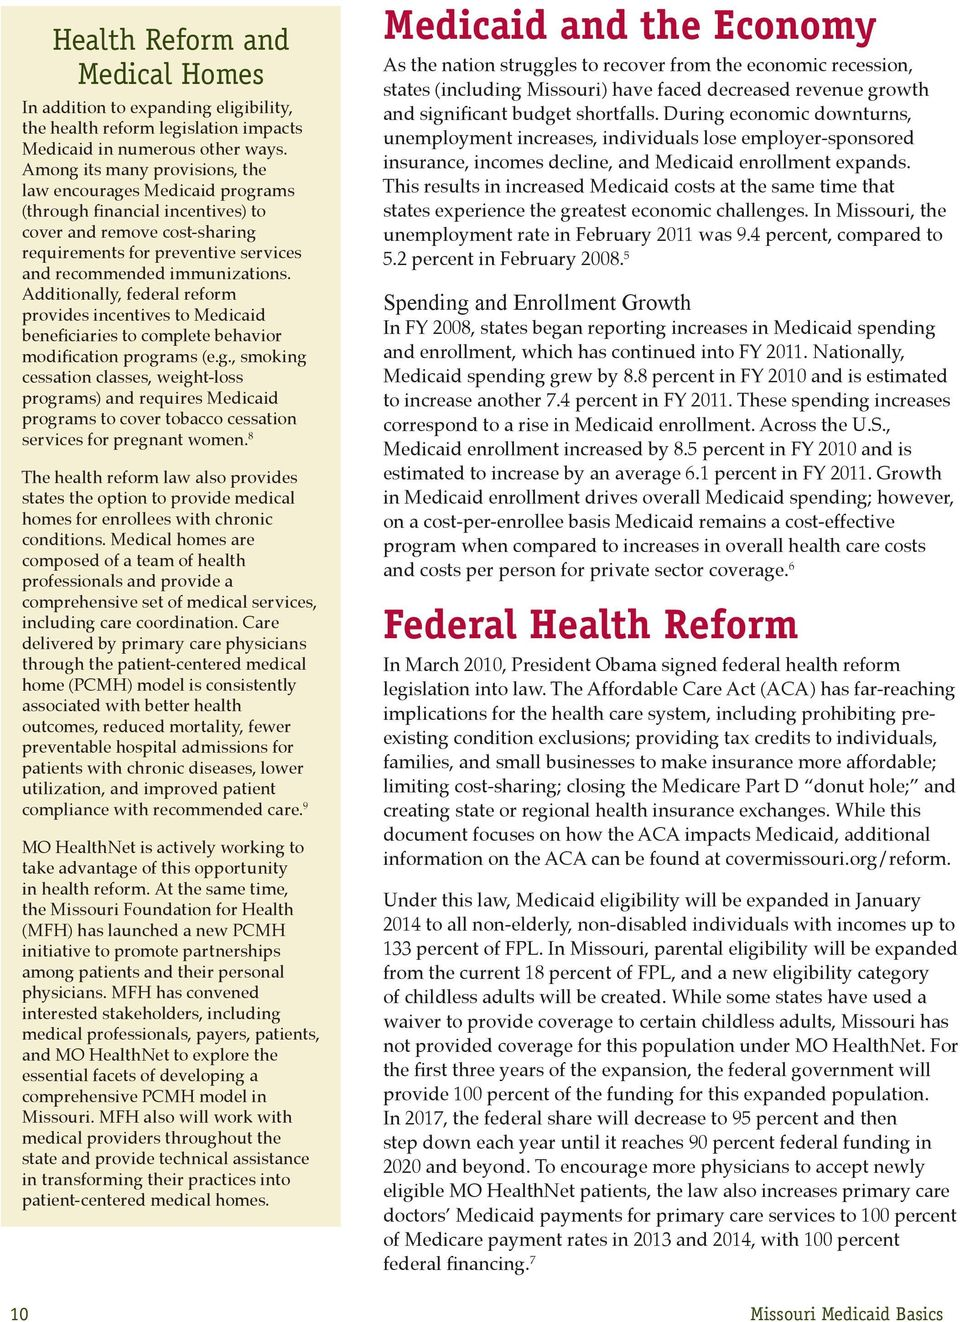 Additionally, federal reform provides incentives to Medicaid beneficiaries to complete behavior modification progr